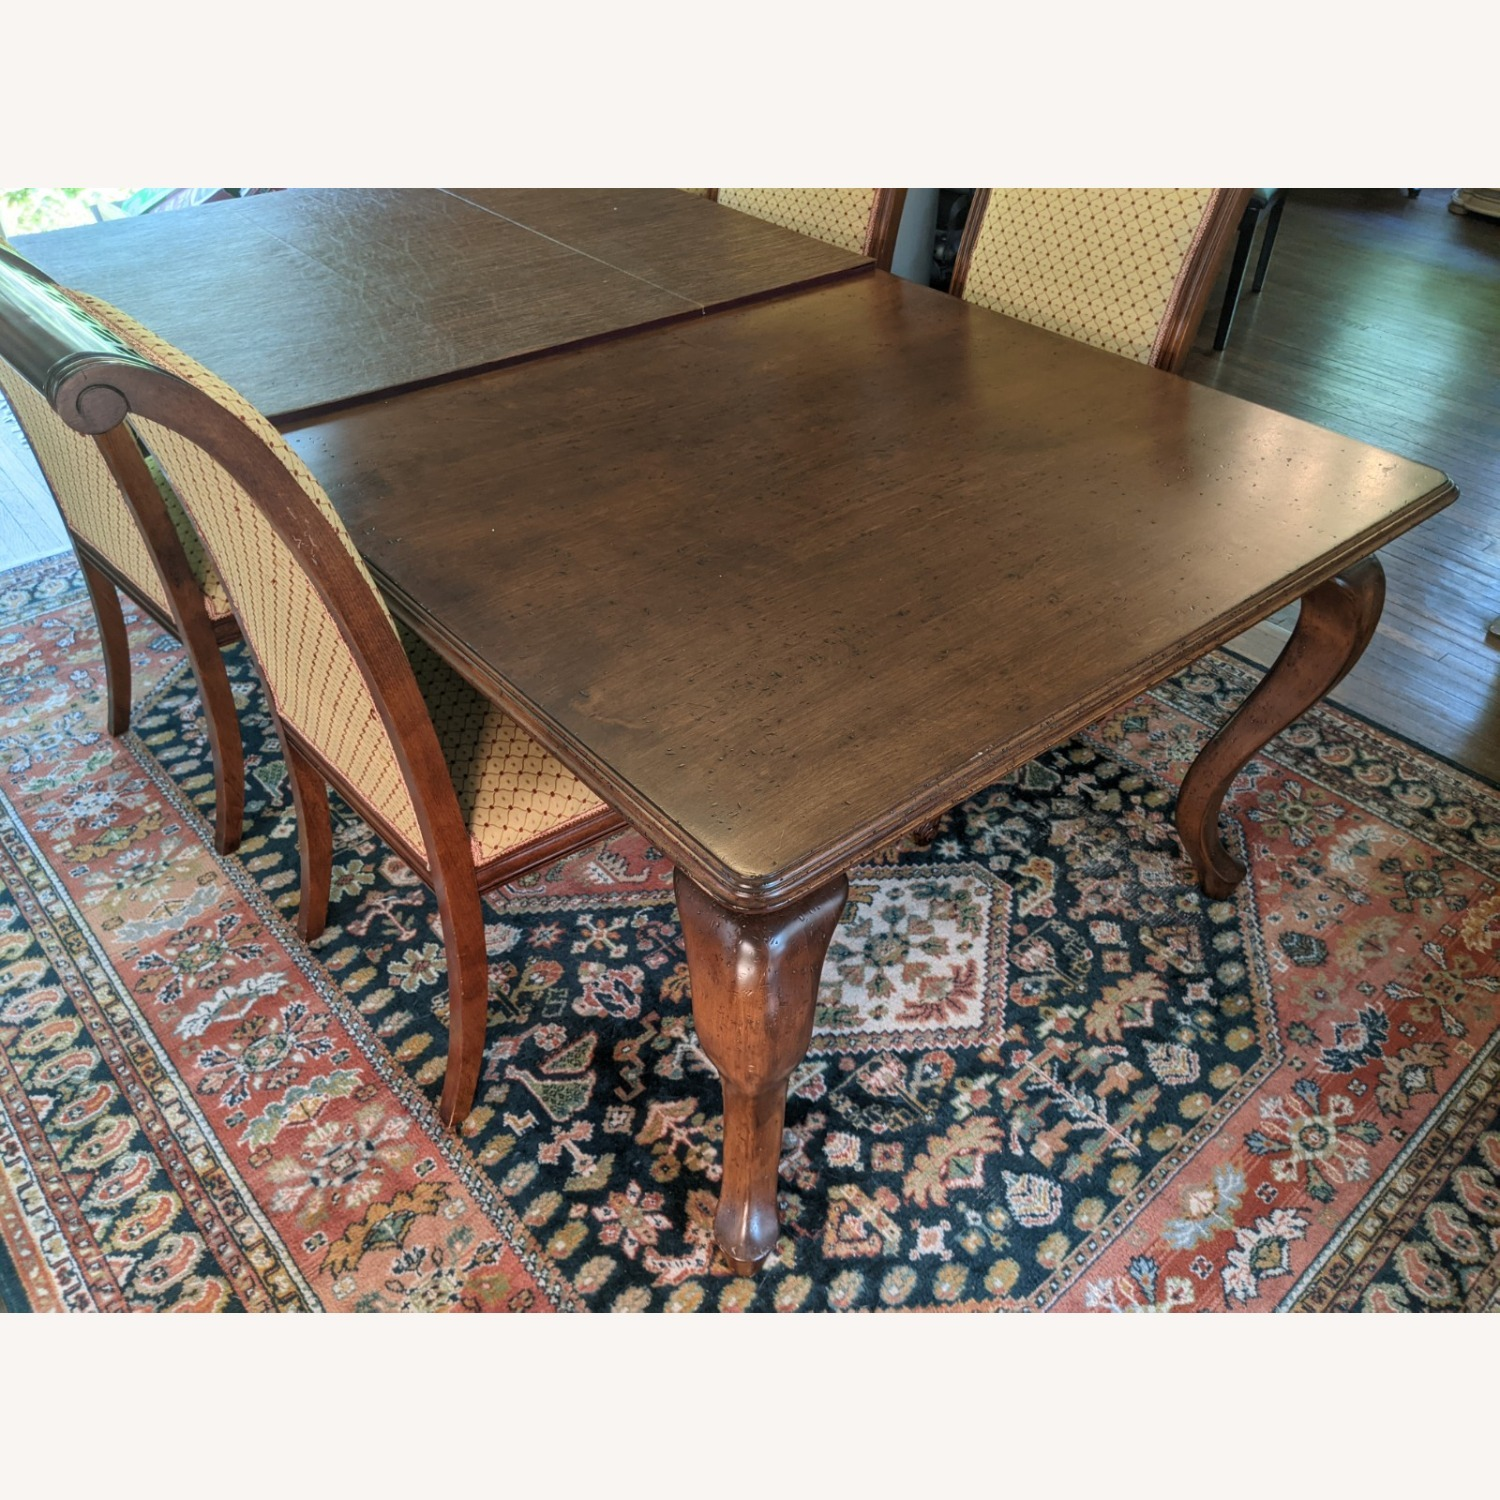 Queen Anne-style Table with Leaves and Table Pad - image-4